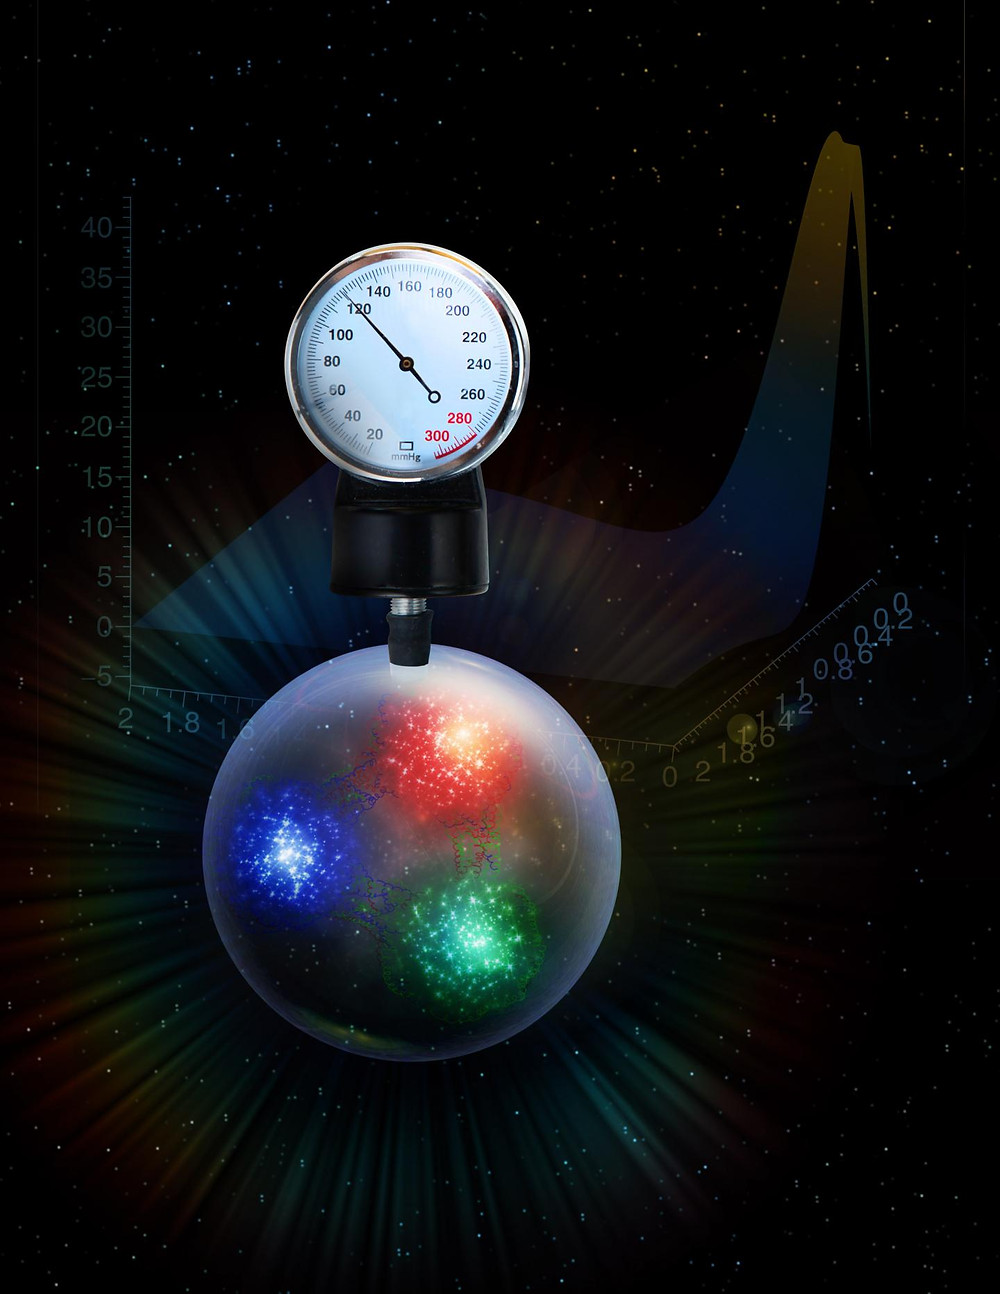 Nuclear physicists have found that the proton's building blocks, the quarks, are subjected to a pressure of 100 decillion Pascal (1035) near the center of a proton, which is about 10 times greater than the pressure in the heart of a neutron star.  @ DOE's Jefferson Lab